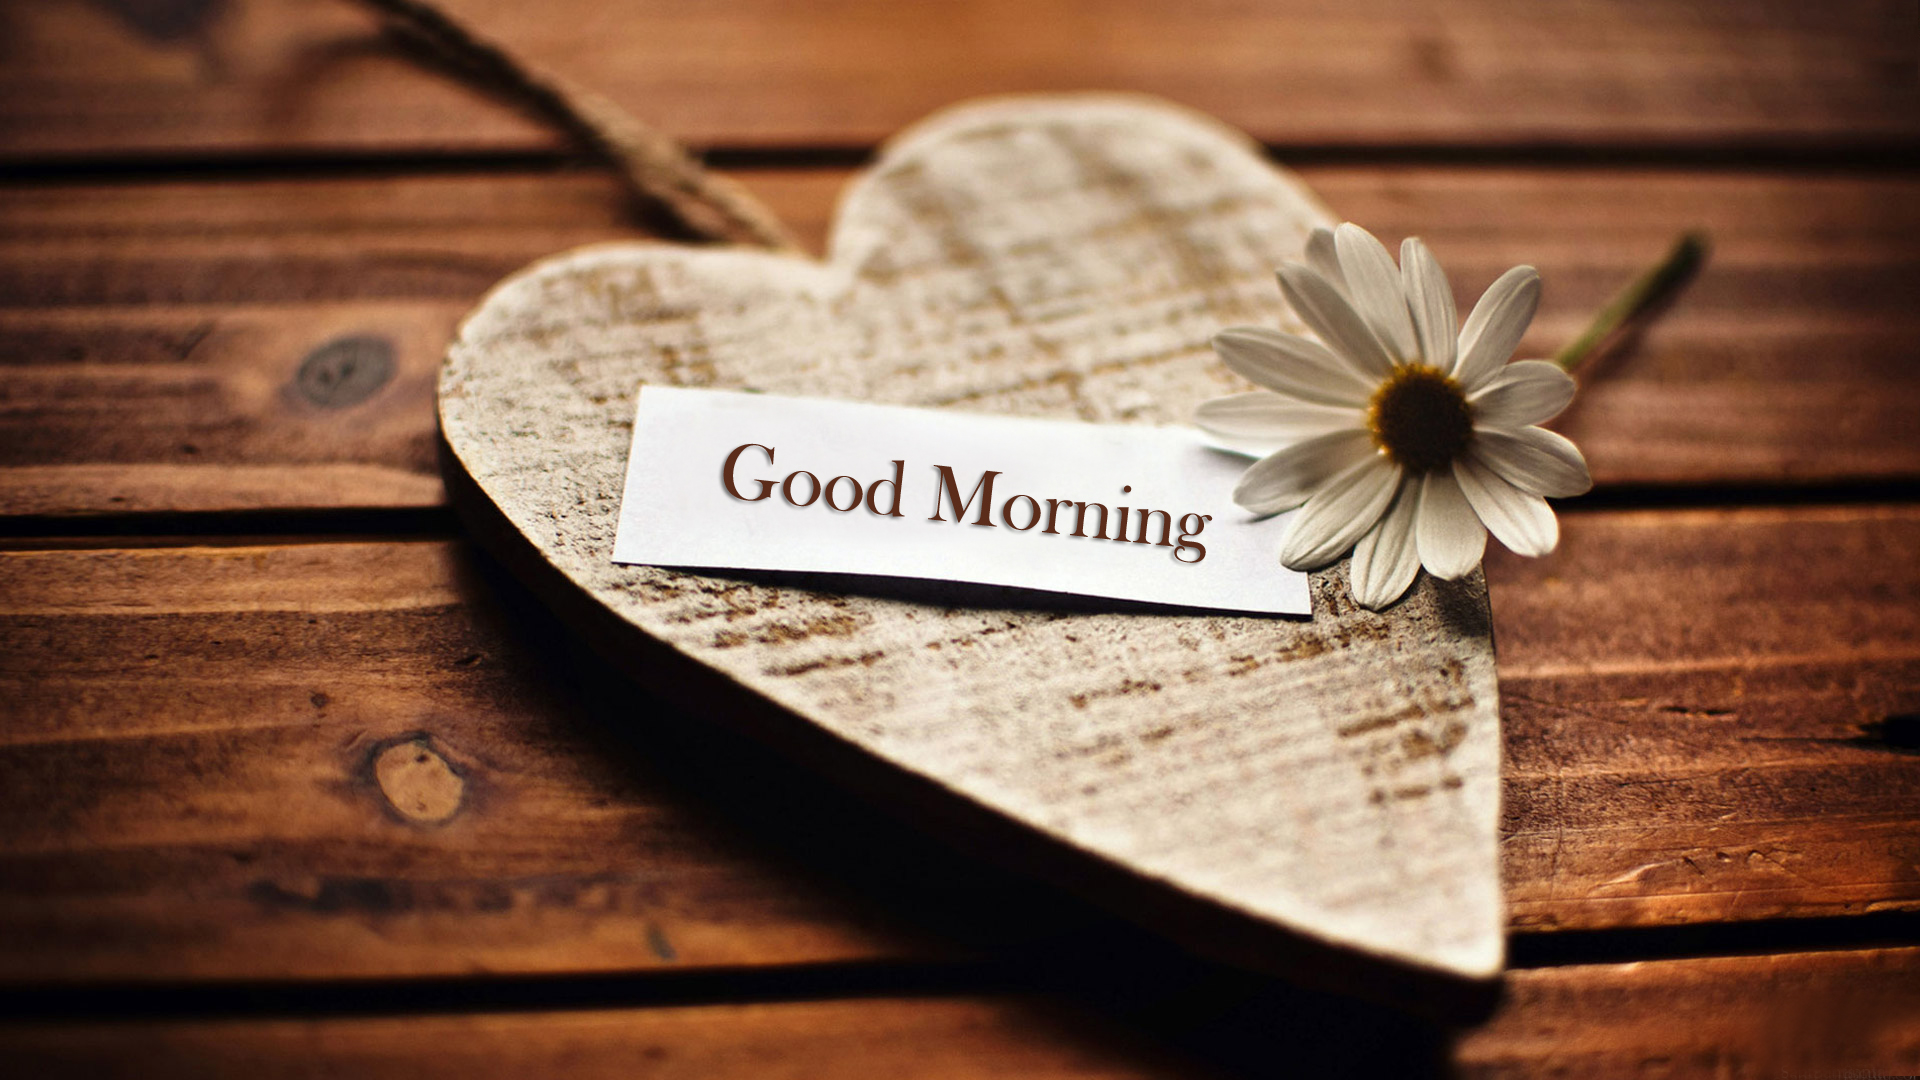 Wallpaper Good Morning With Love : Good Morning - Images Details - UK - Page: 0